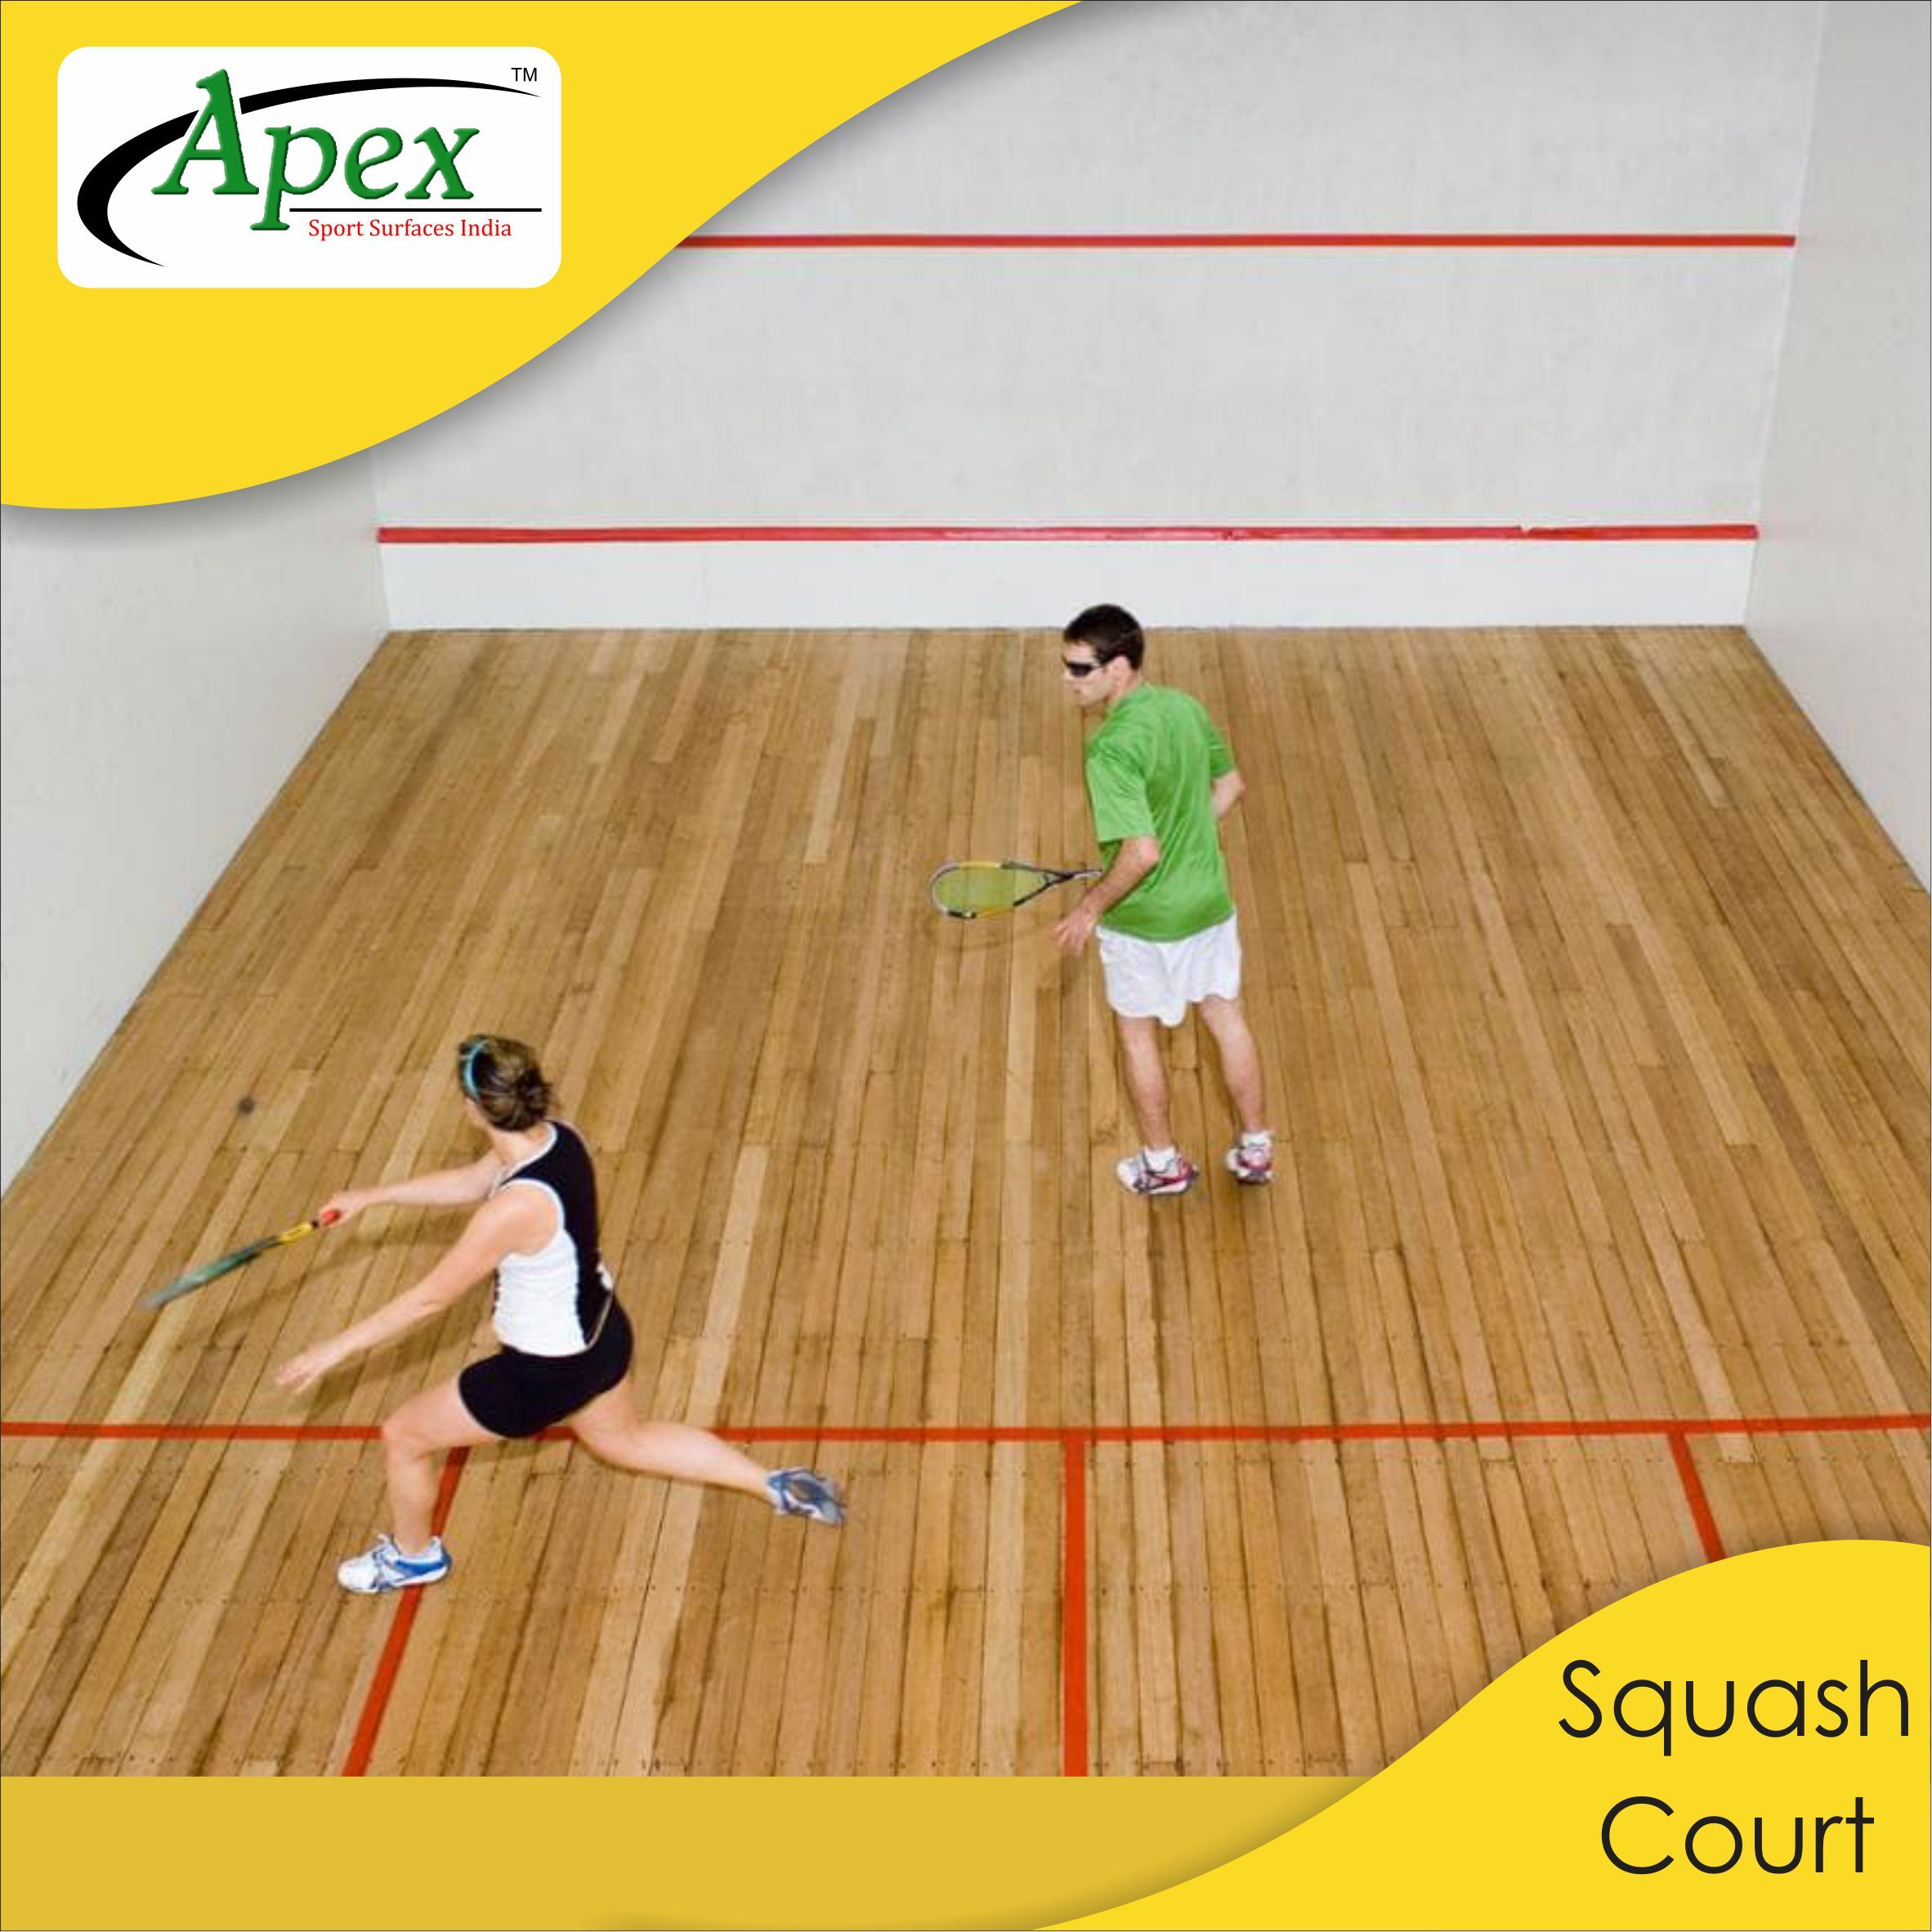 Apex Sports Proudly Manufactures Squash Court Floorings With Excellent Shock Absorbency And Superb Traction For A Quick Change Court Flooring Fun Sports Sports